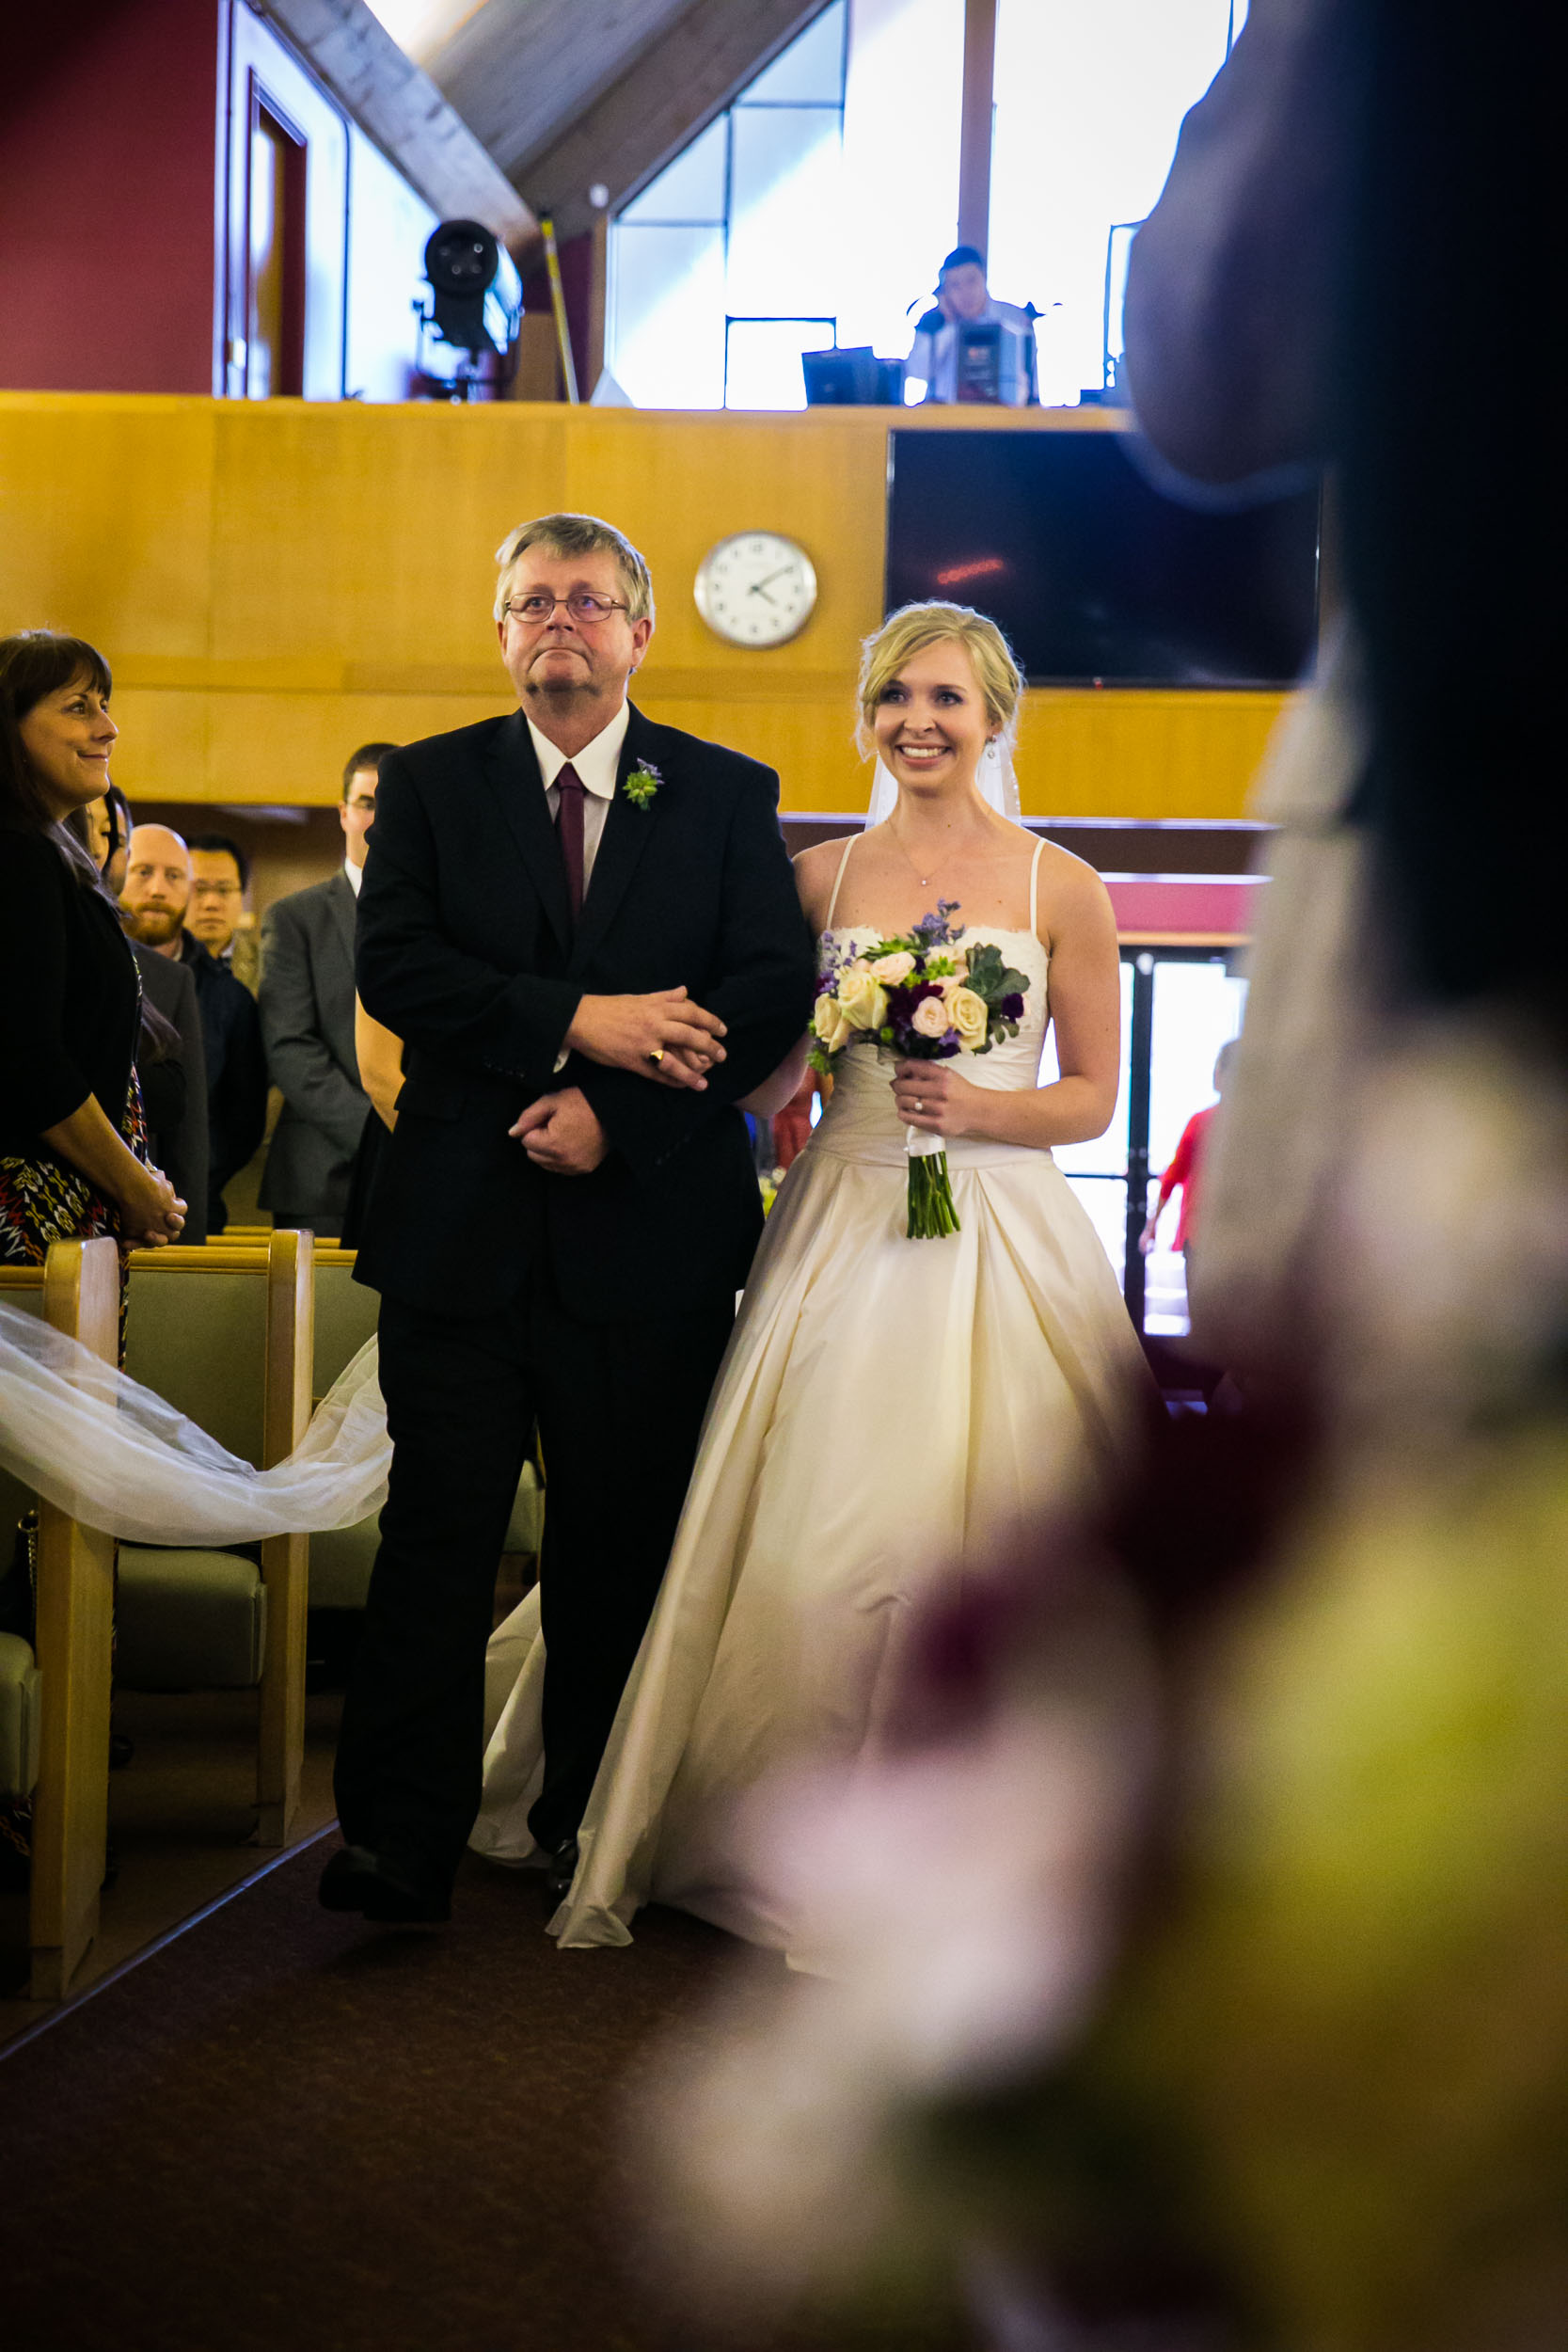 Seattle Community Church Wedding Photography | By G. Lin Photography | Bride walking down aisle